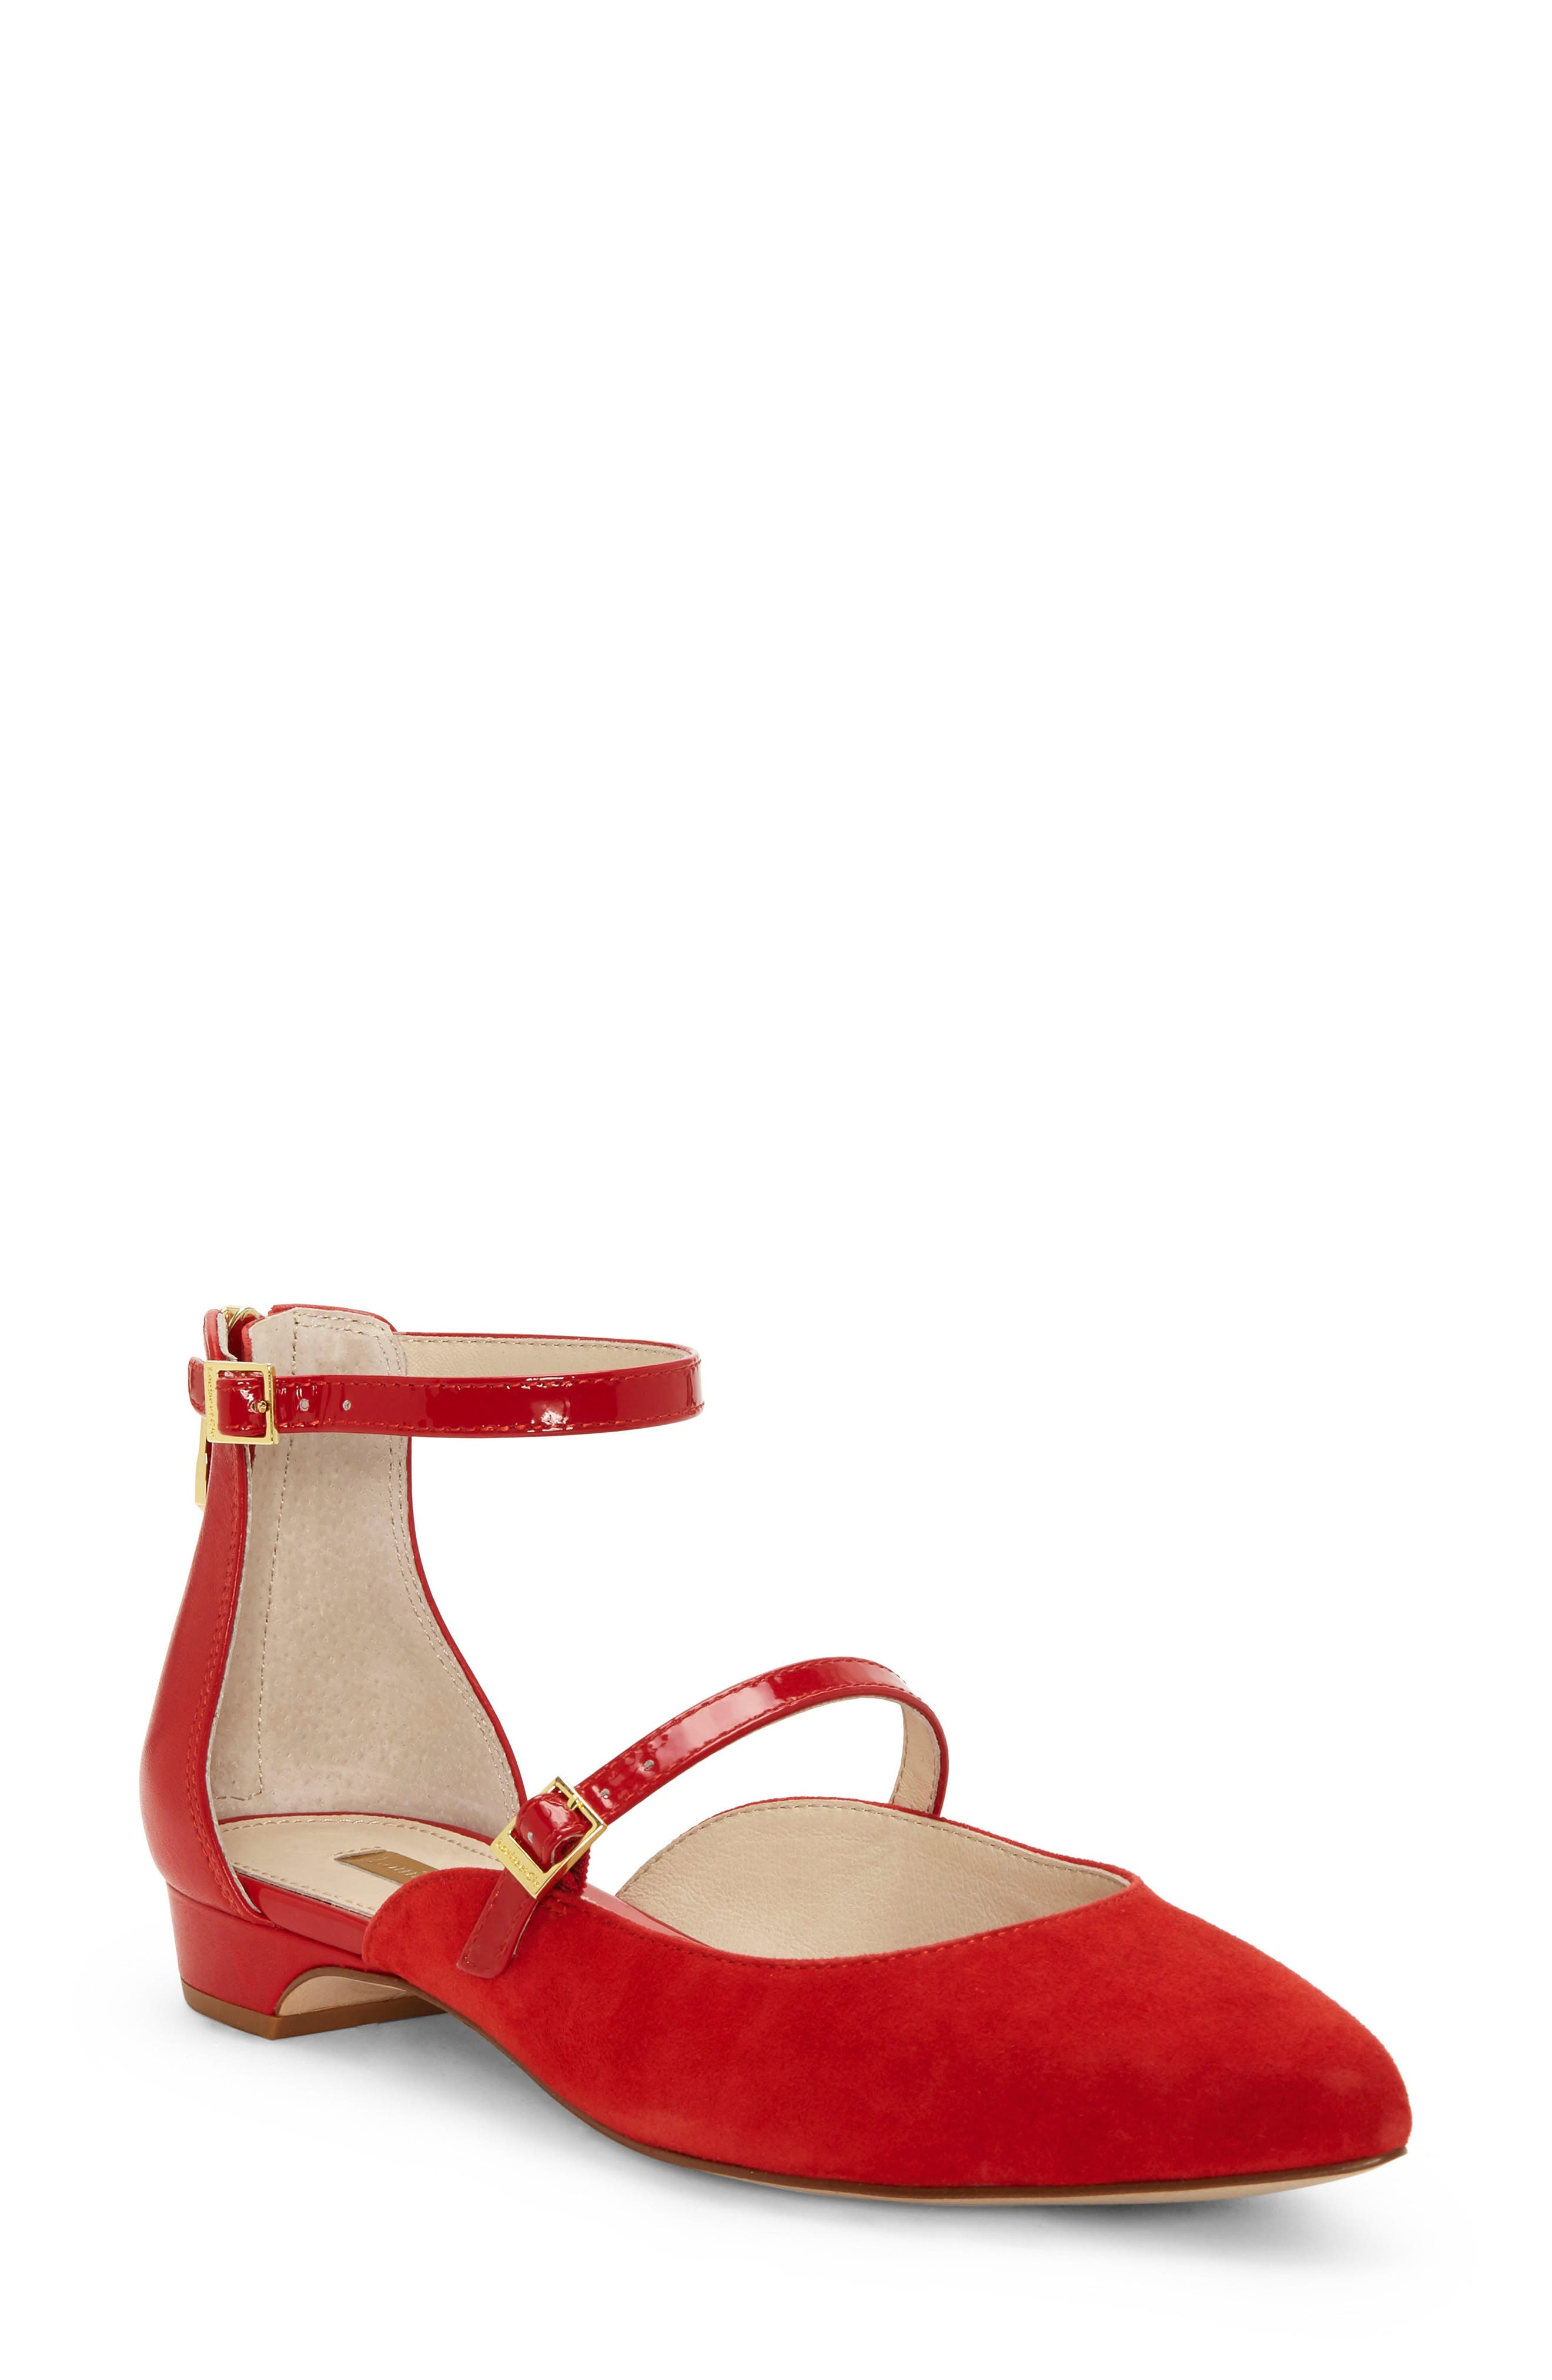 Louise Et Cie Claire Ankle Strap Flat, Red